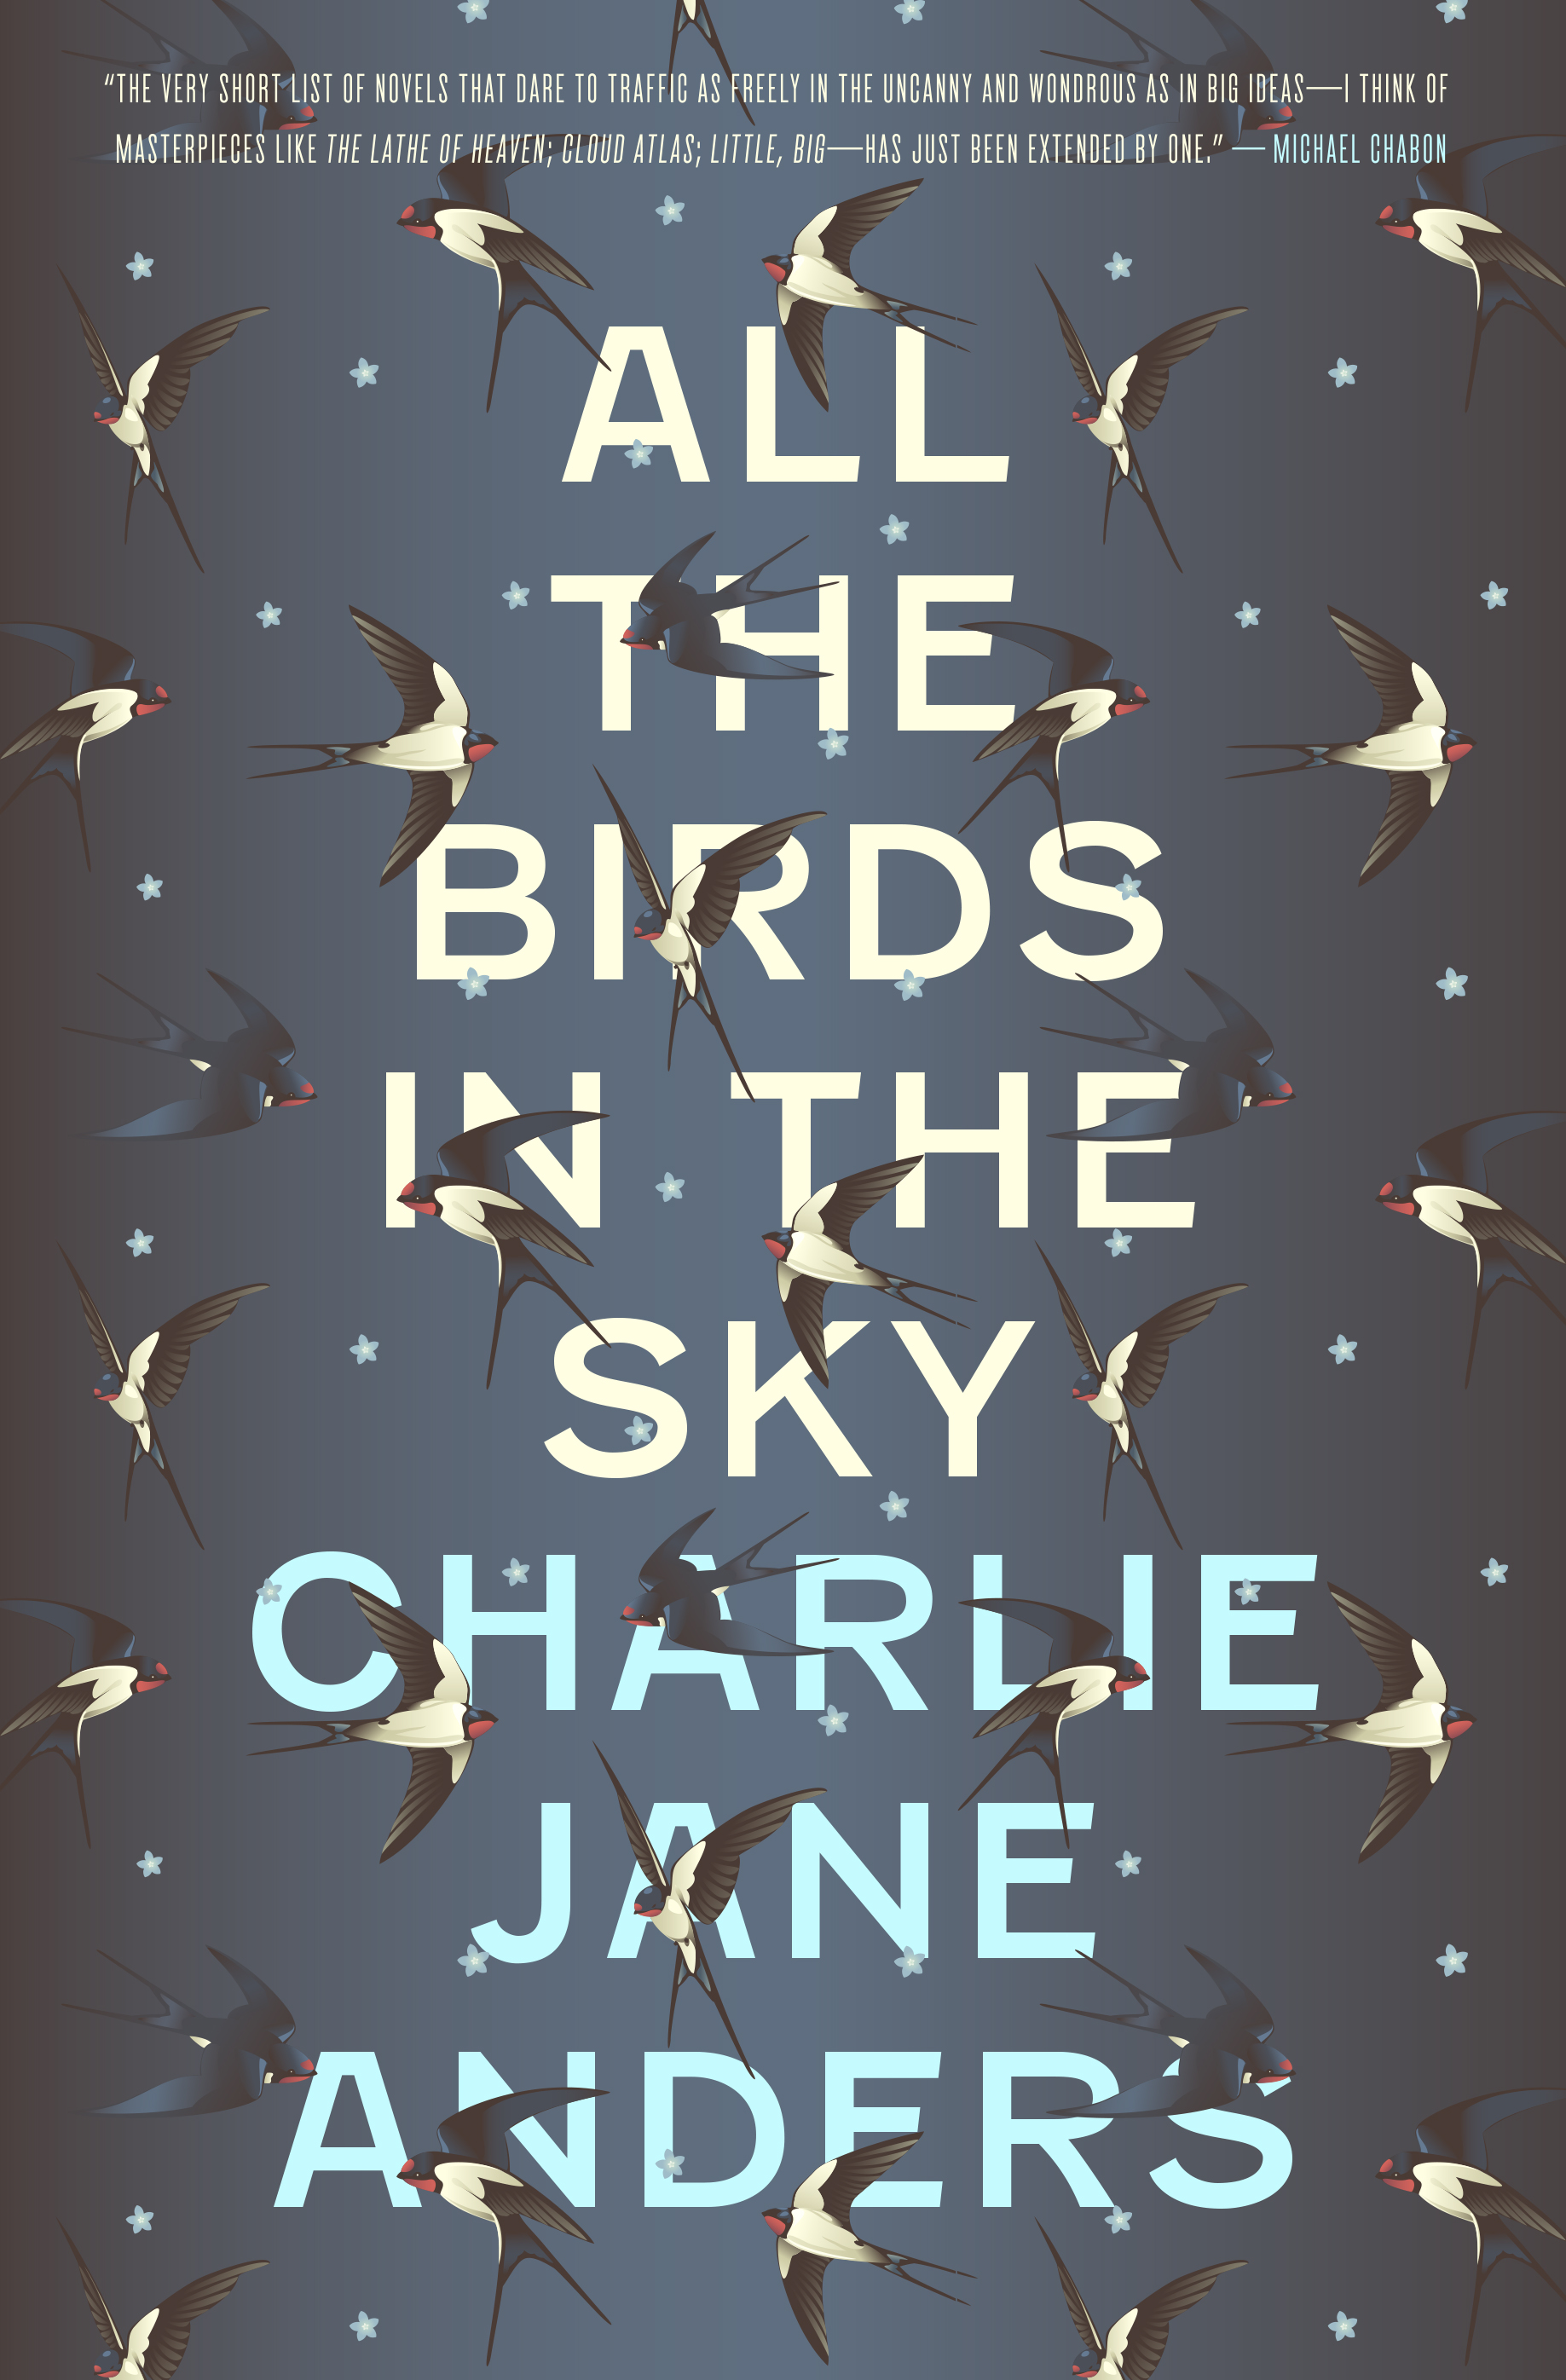 Tors ebook of the month club all the birds in the sky by charlie jane anders fandeluxe Images